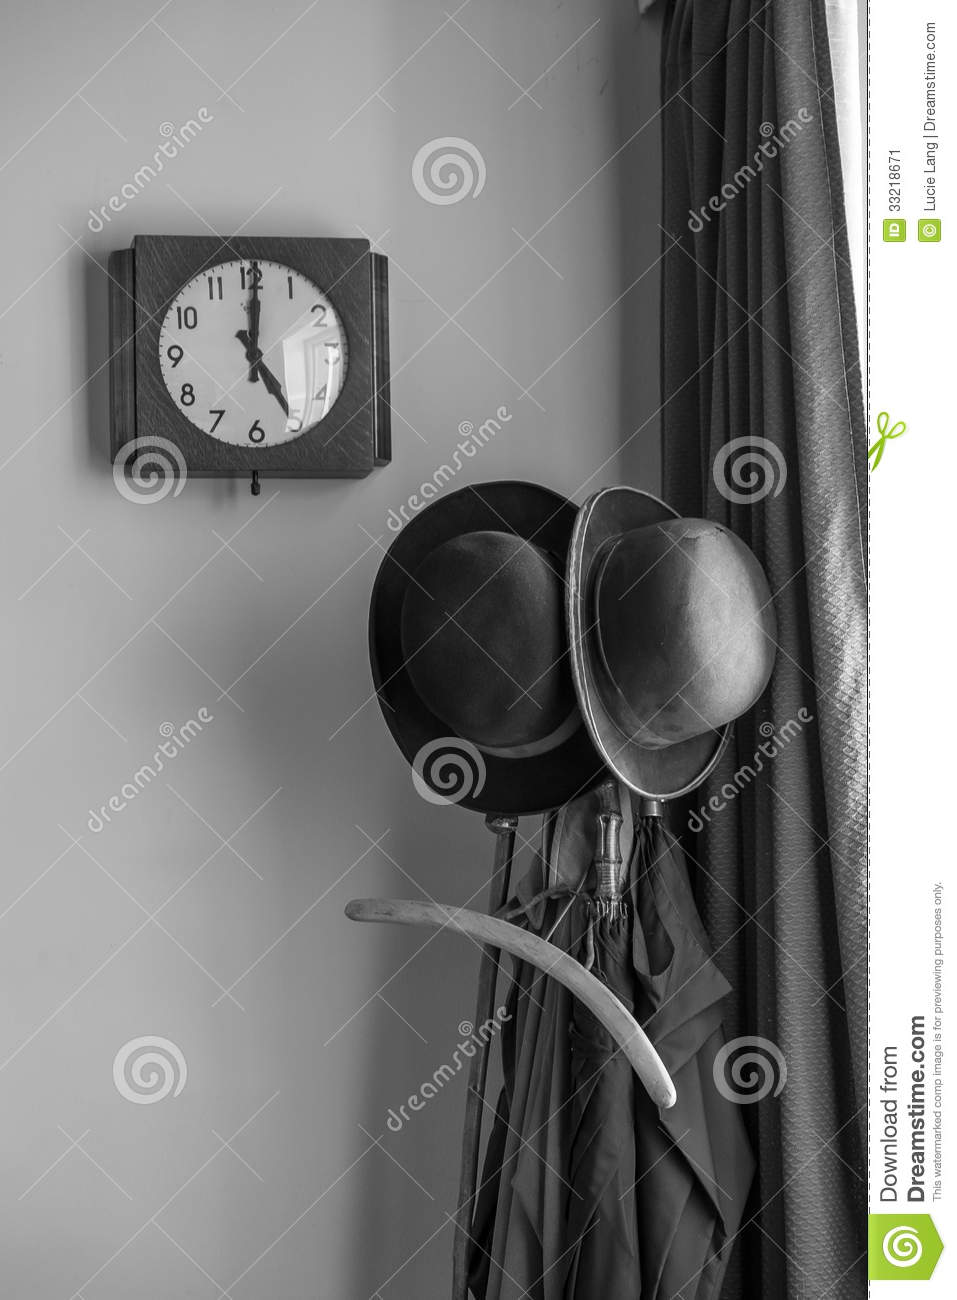 A clock showing 5 o clock next to bowler hats on a stand